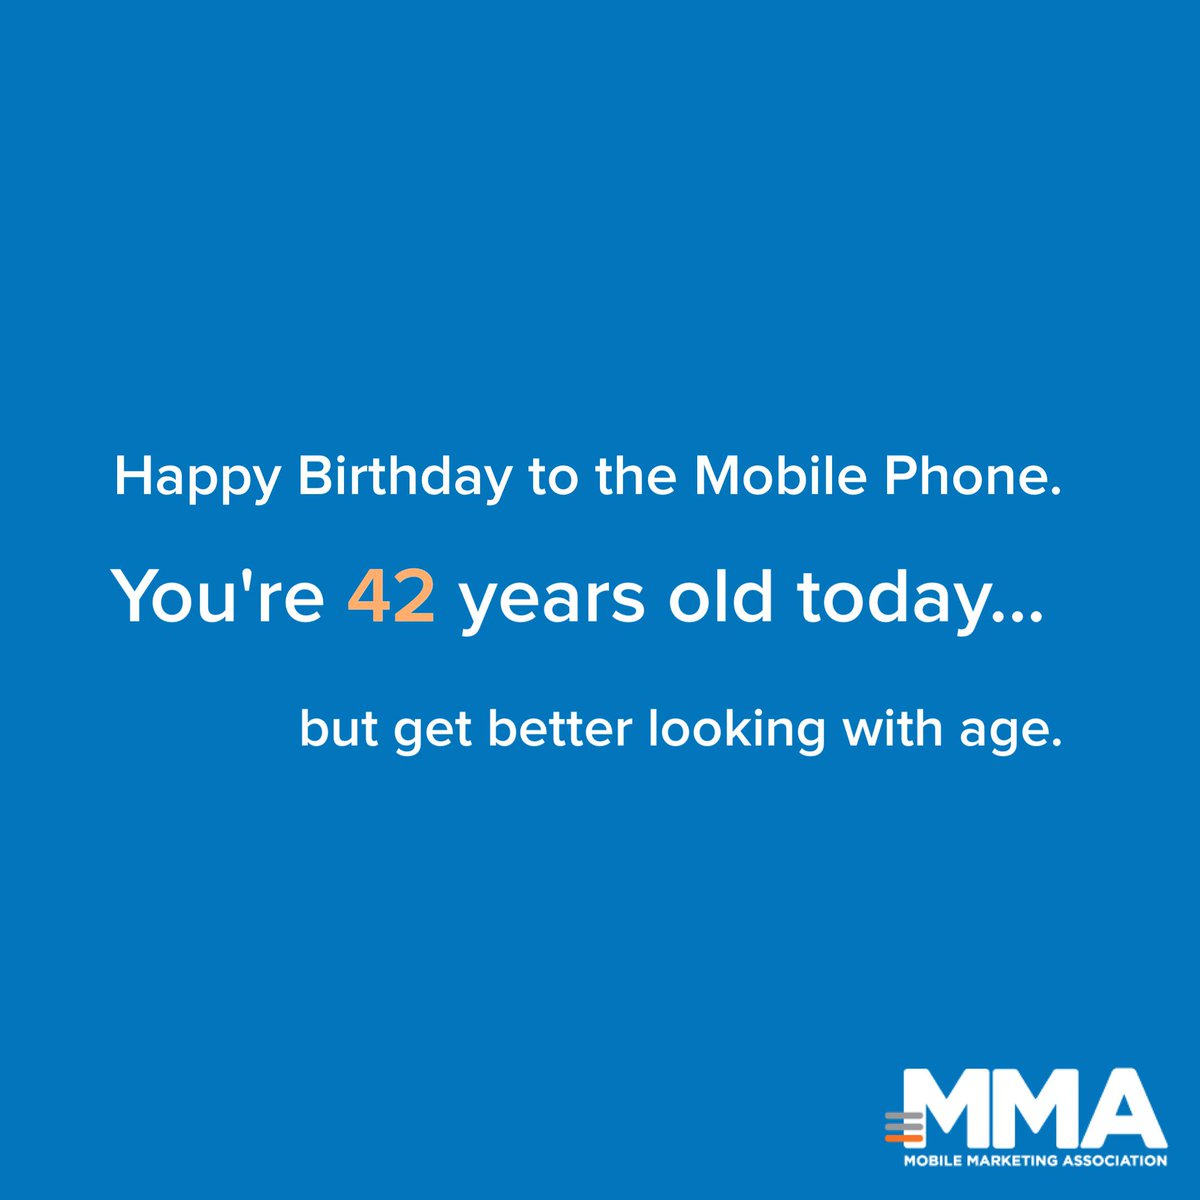 Happy Birthday to the Cellphone, which turns 42 today!  #mobile #happybirthday #betterwithage http://t.co/LB5VB0O3ic http://t.co/dIqW7Zbomz